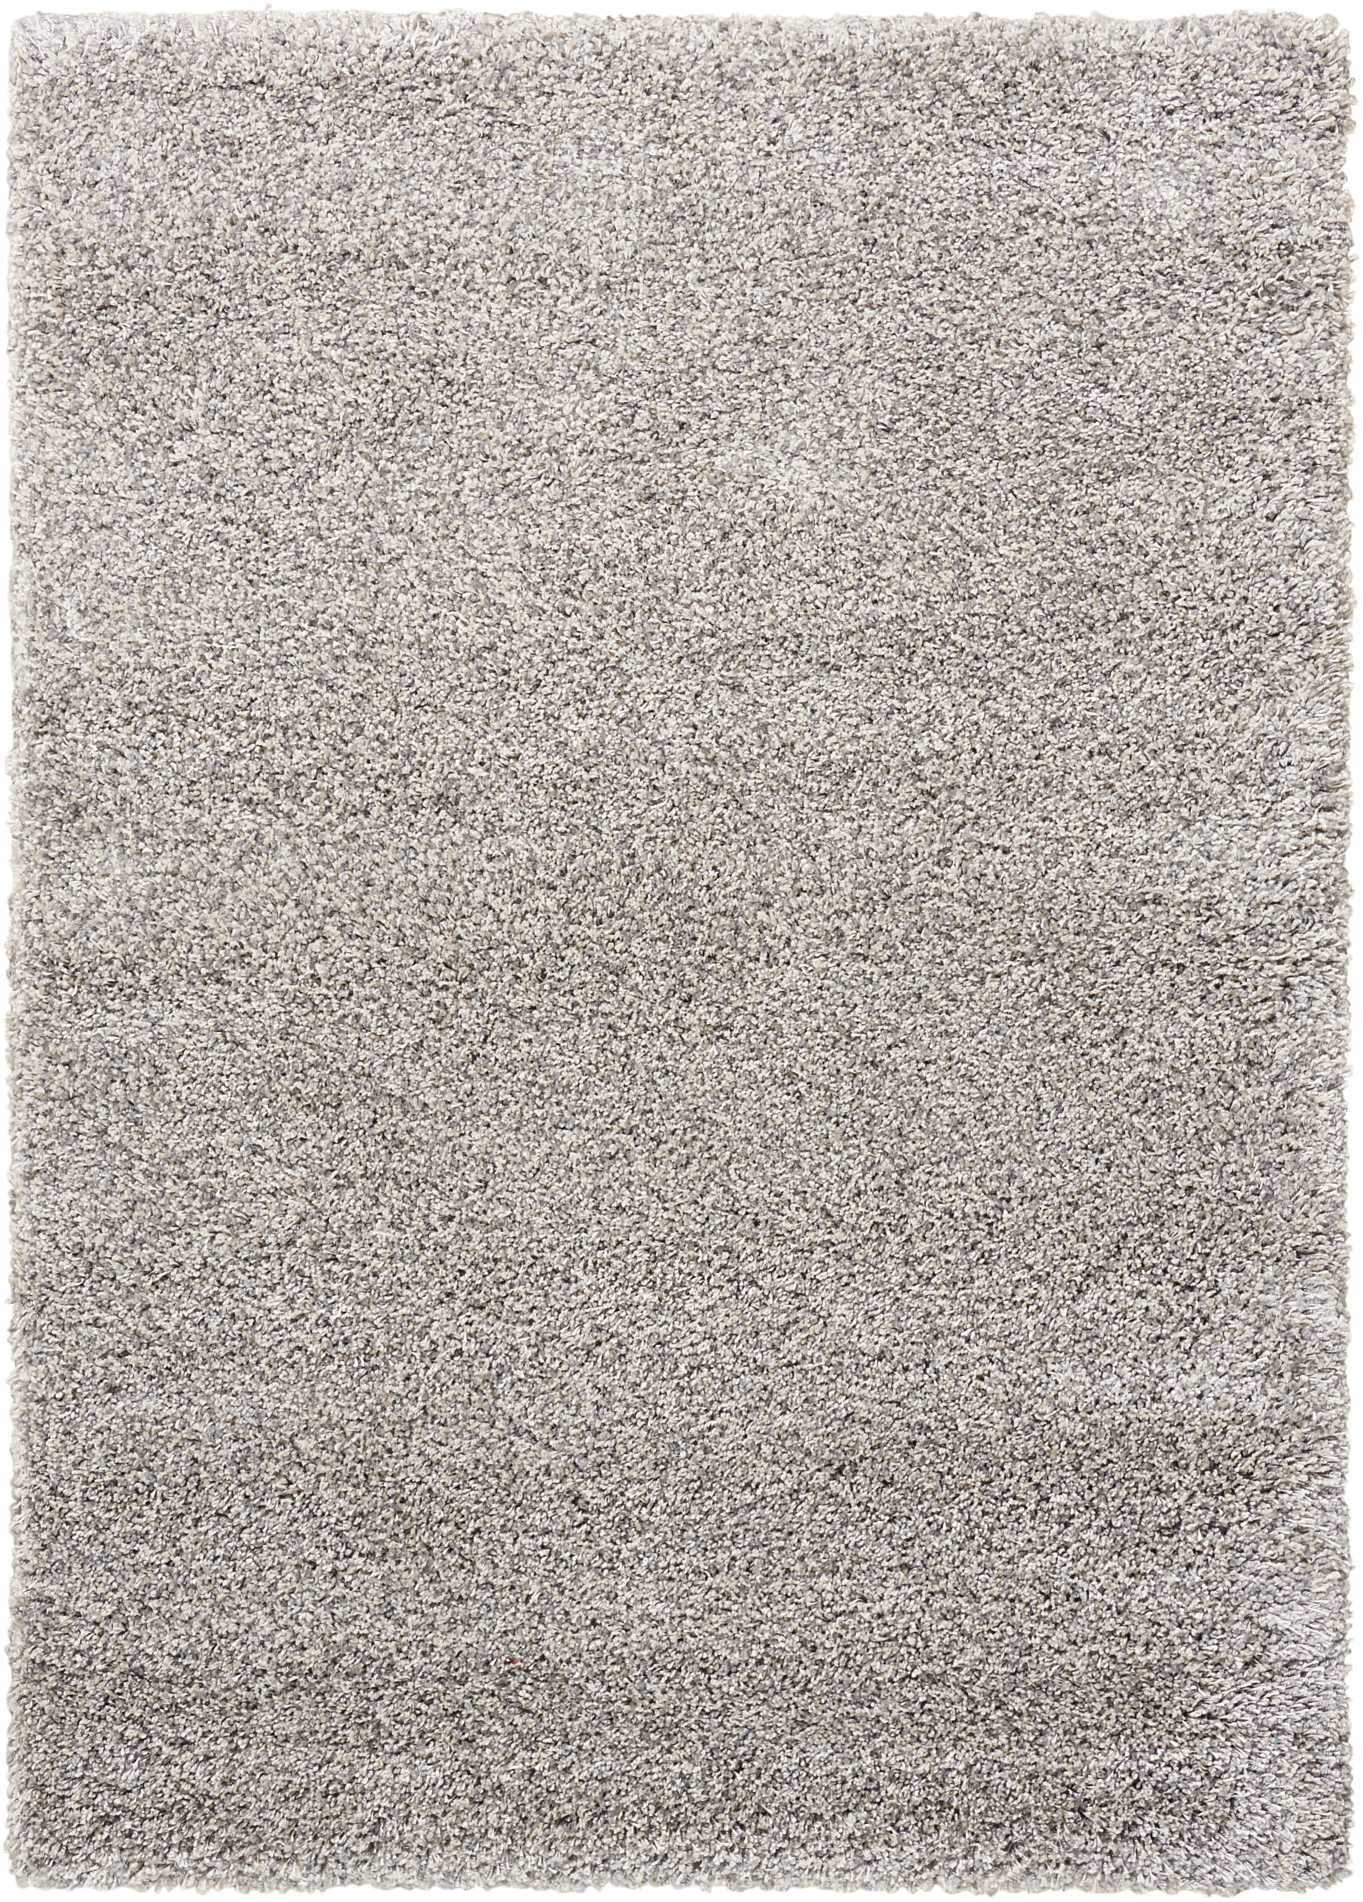 "Amore Light Grey Shag Area Rug 3'11"" x 5'11"" Rugs Nourison 3'11"" x 5'11"" Accent"